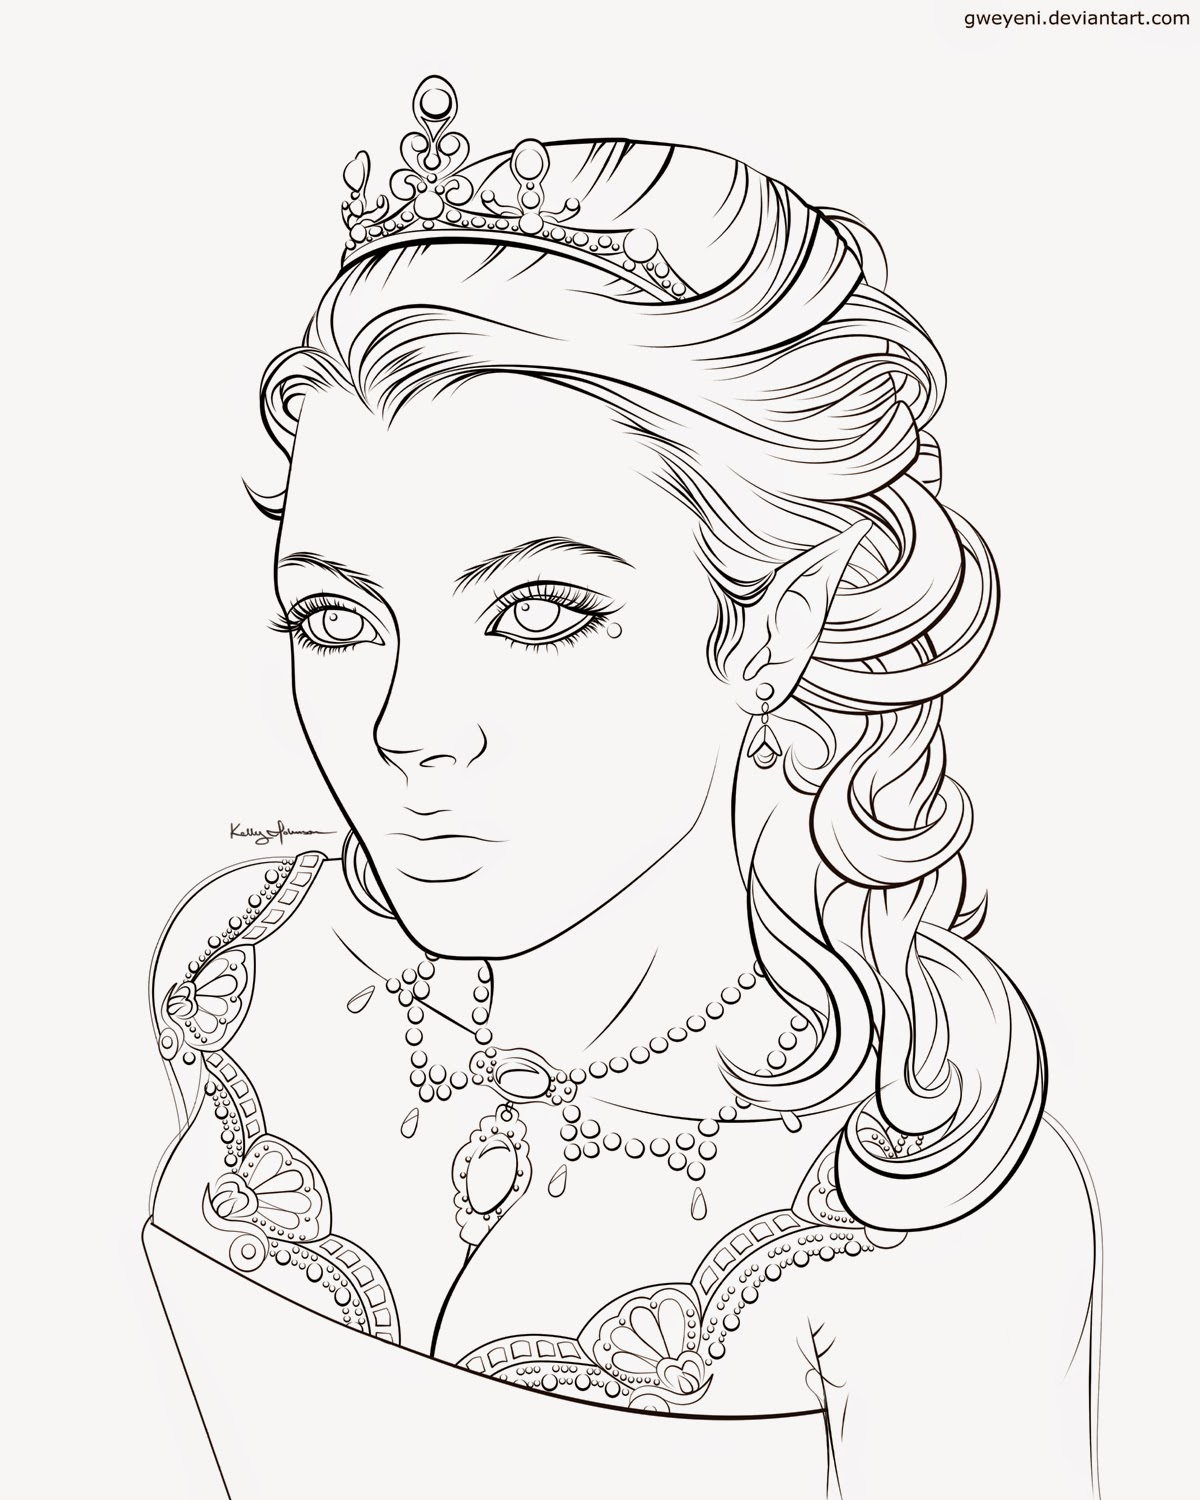 queen coloring pages - photo#16